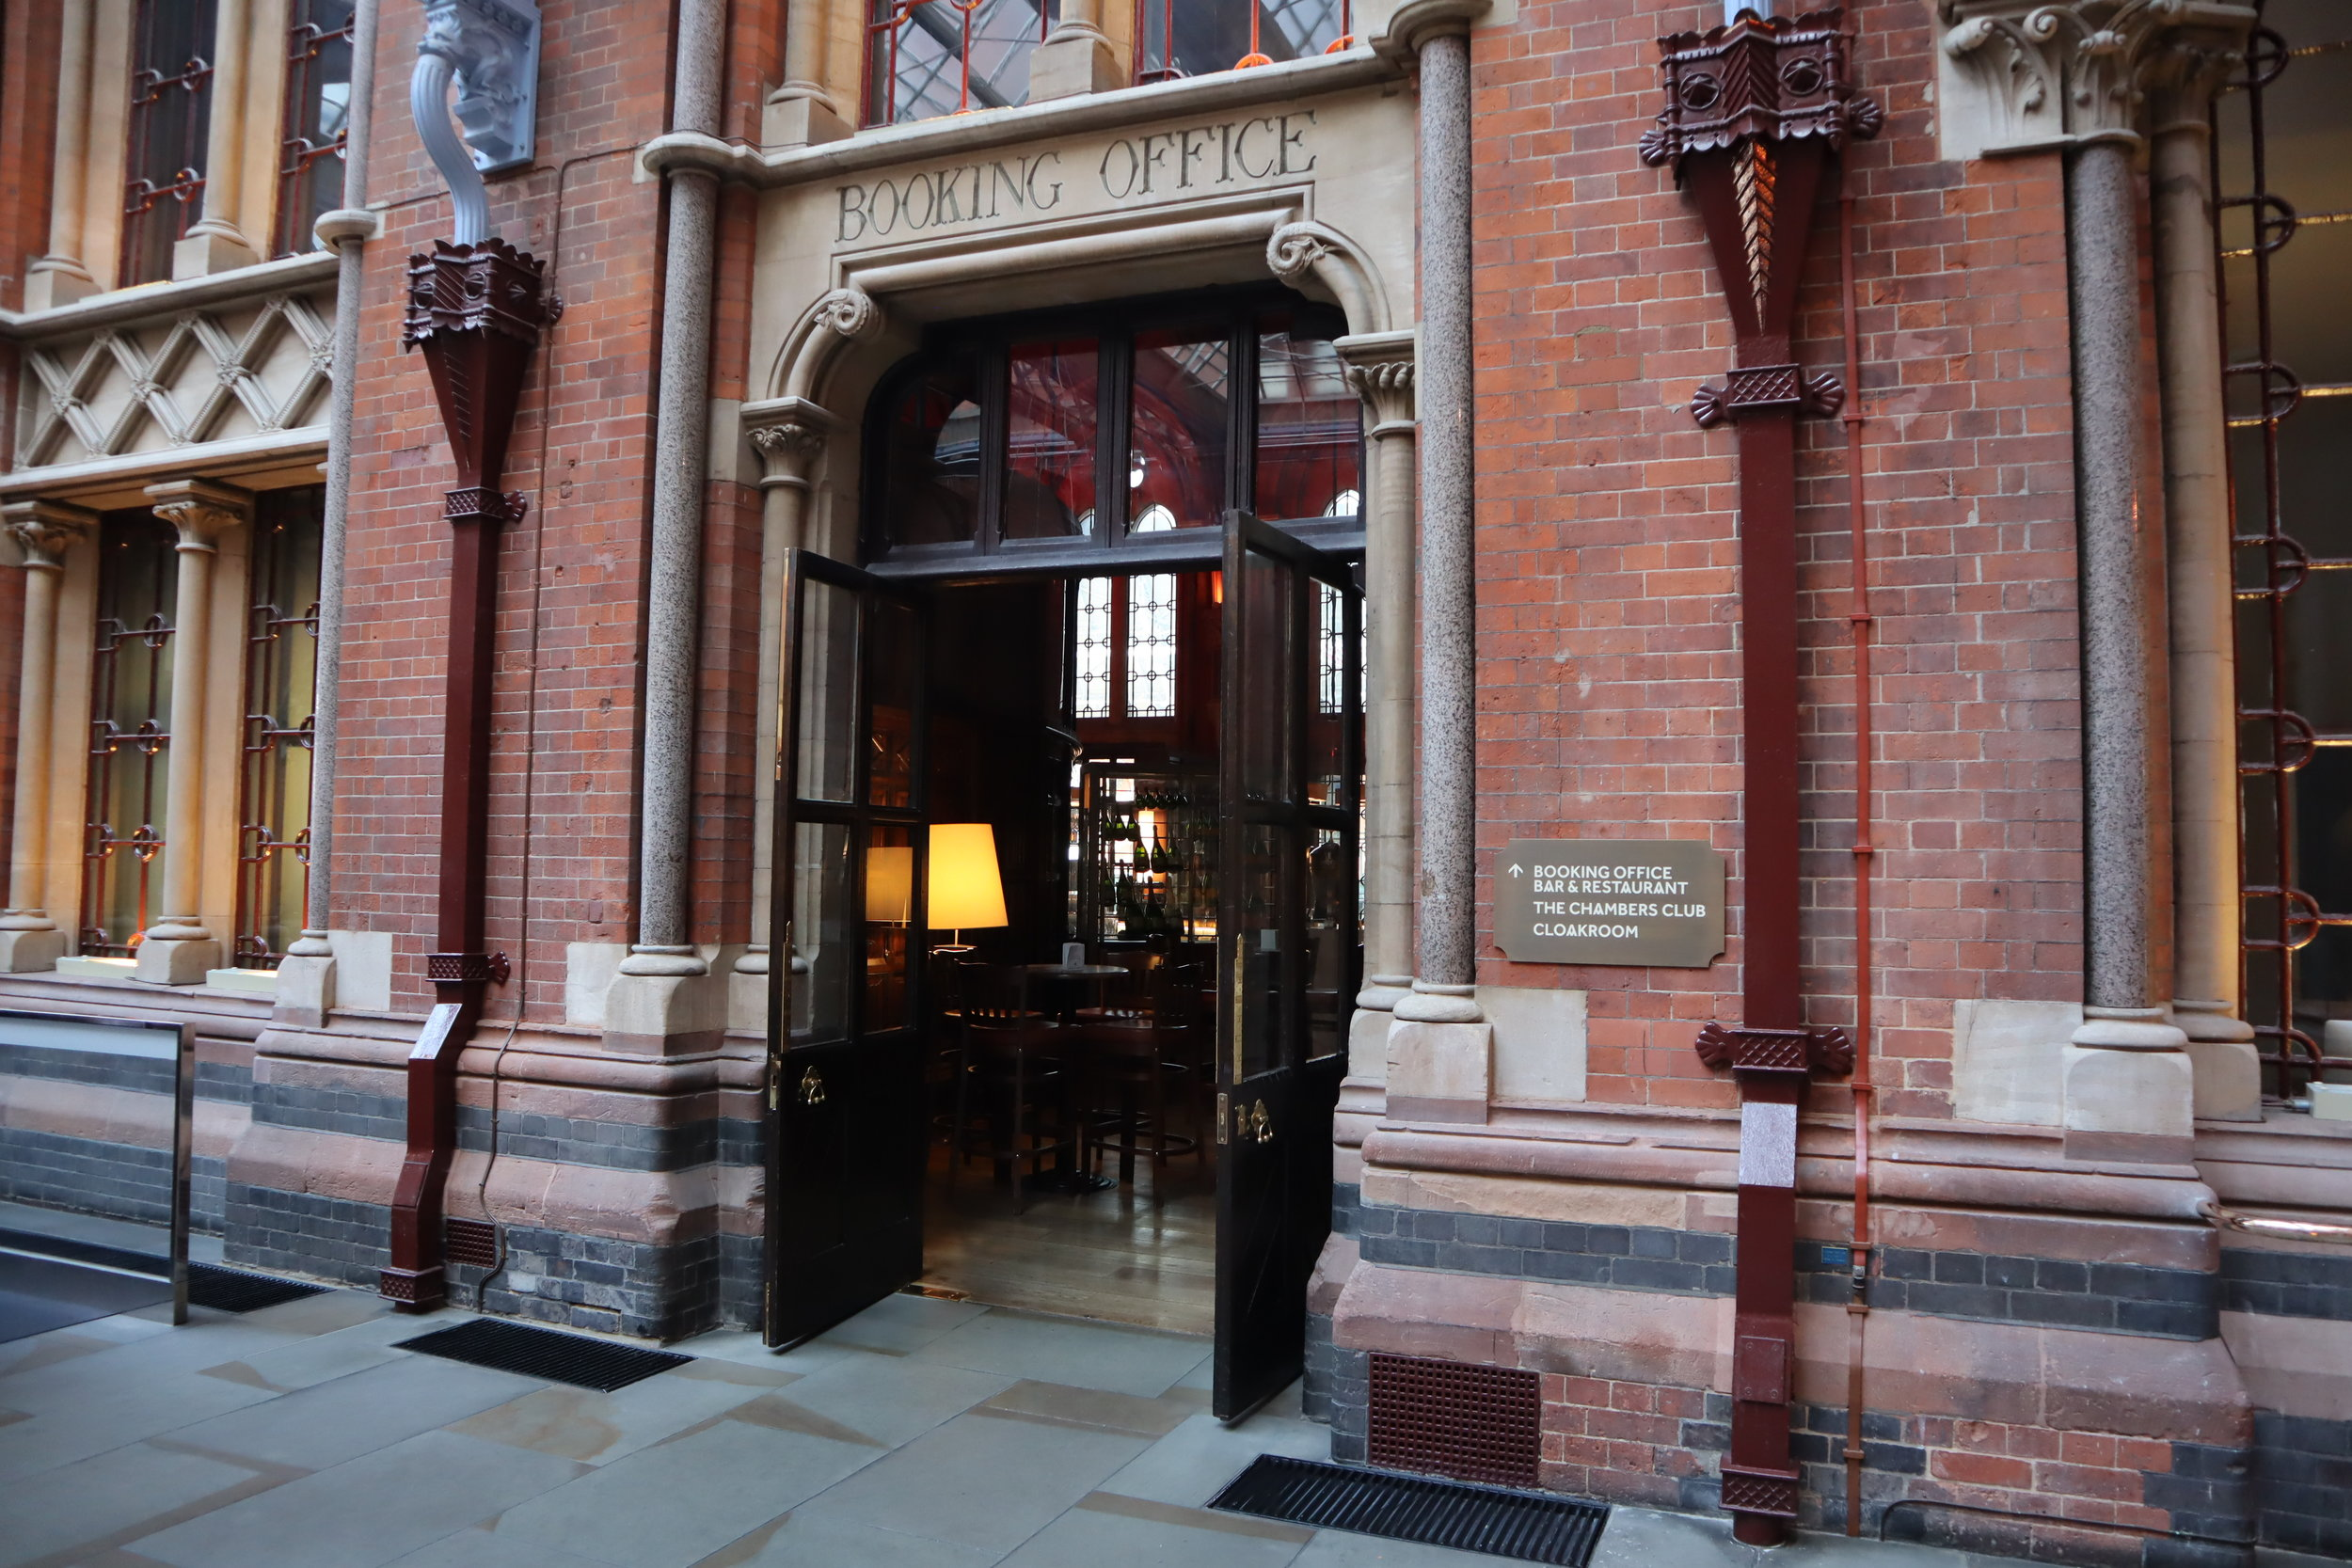 St. Pancras Renaissance Hotel London – Booking Office entrance